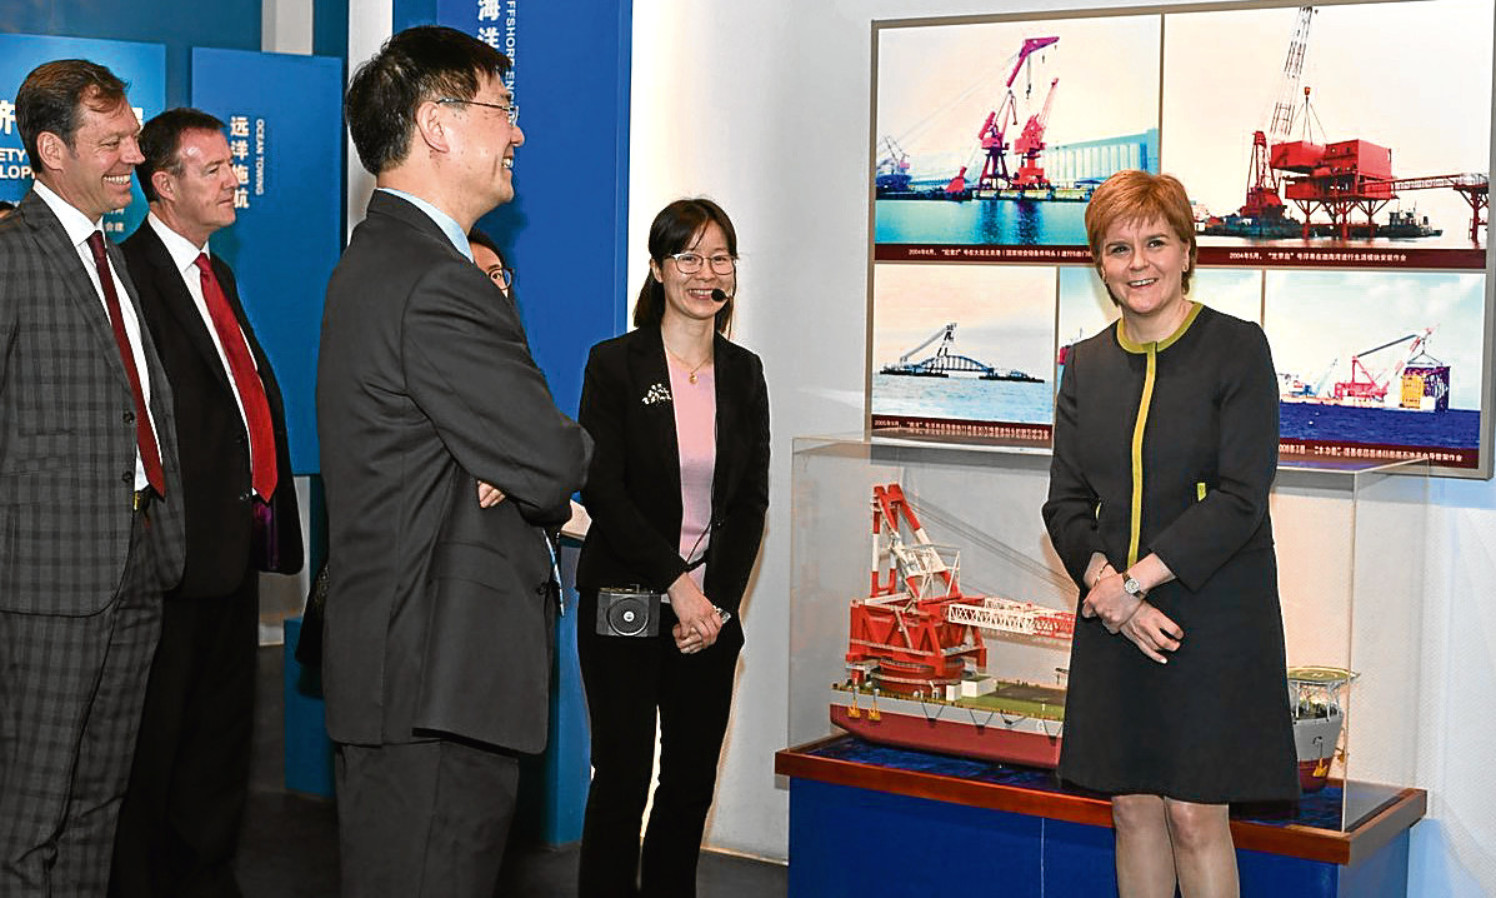 First Minister Nicola Sturgeon on a visit to the offices of COES during her trade mission to China.